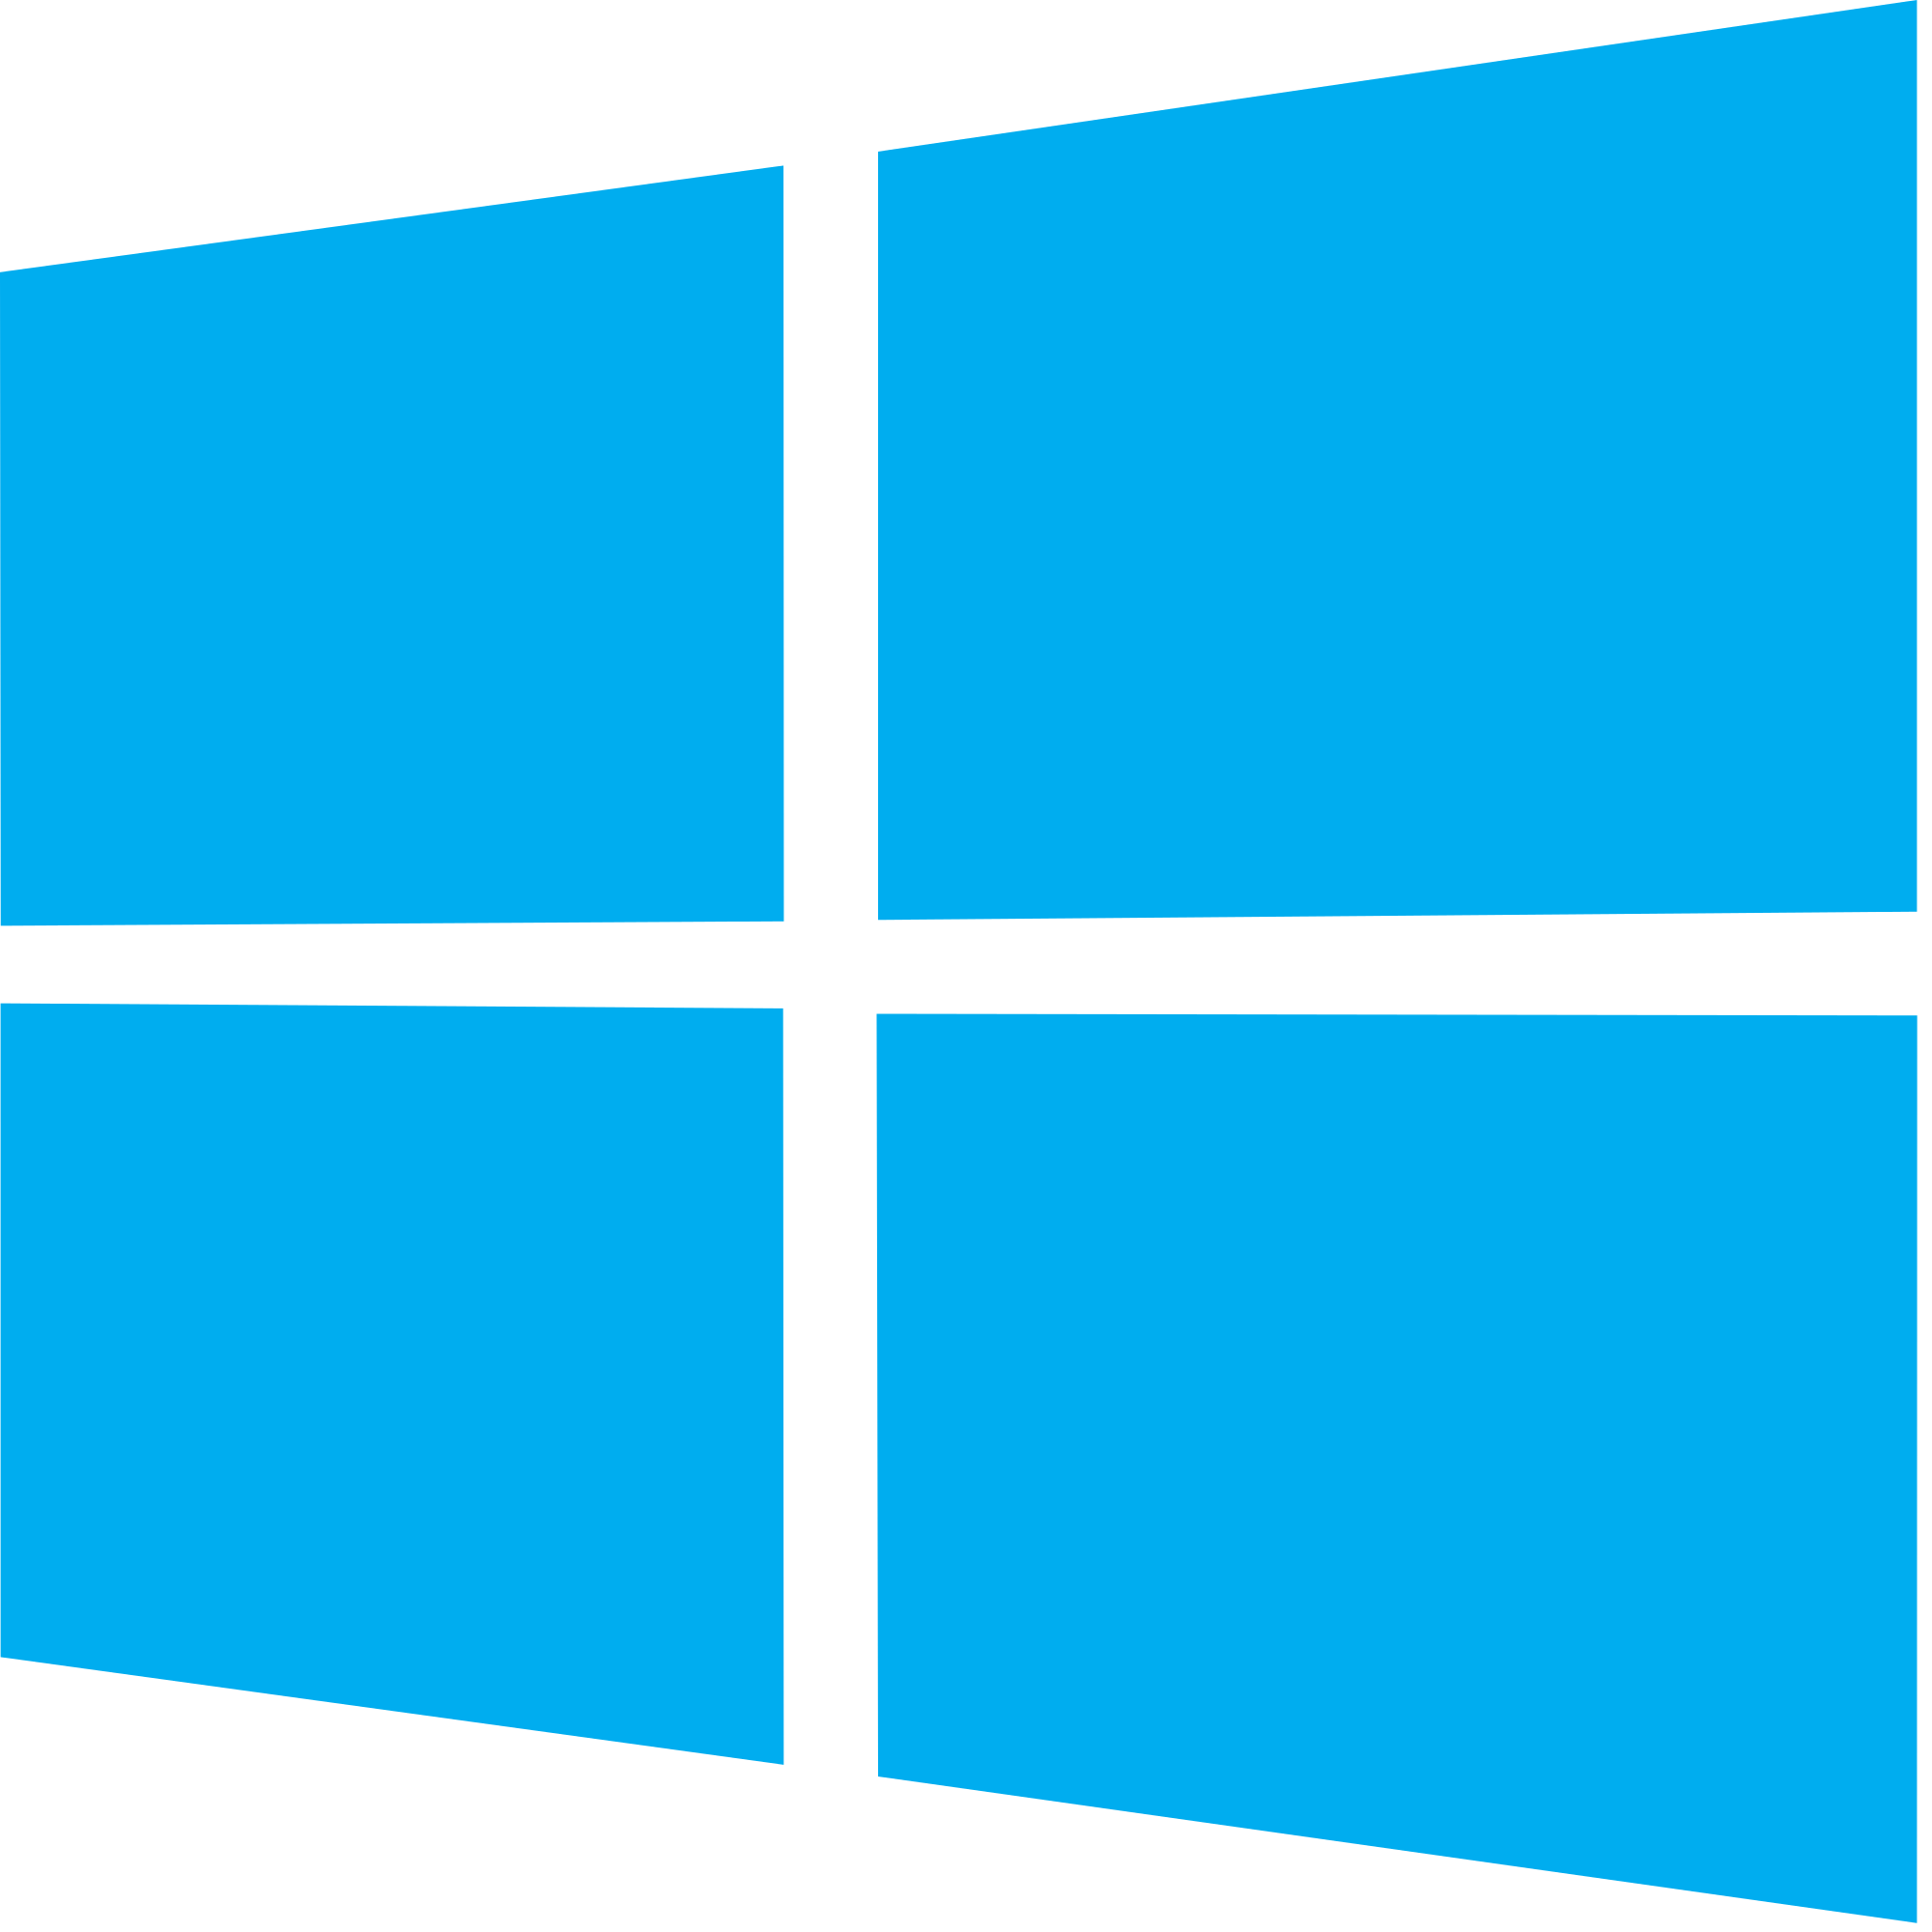 Windows-10-logo-7